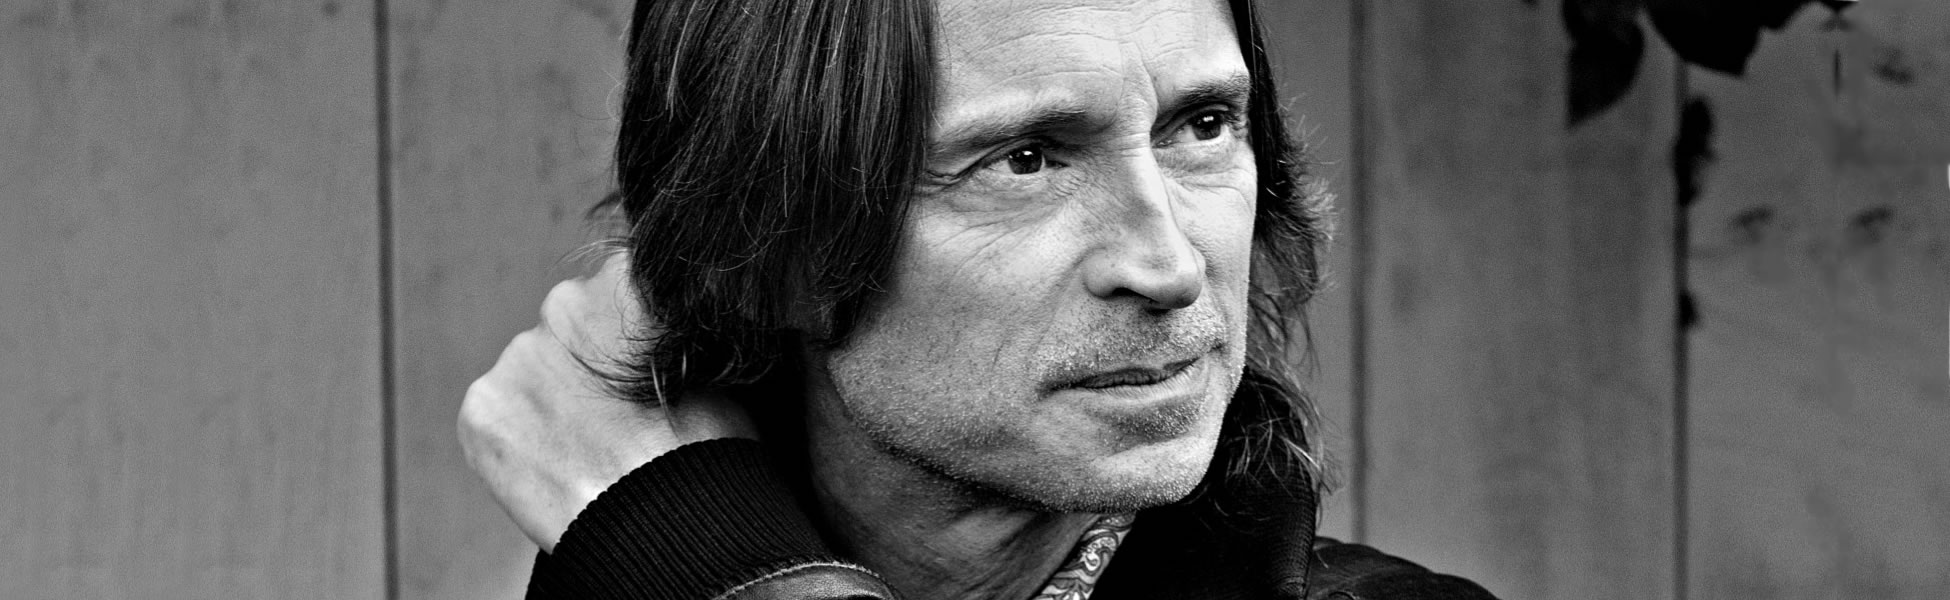 robert carlyle scotland tonight